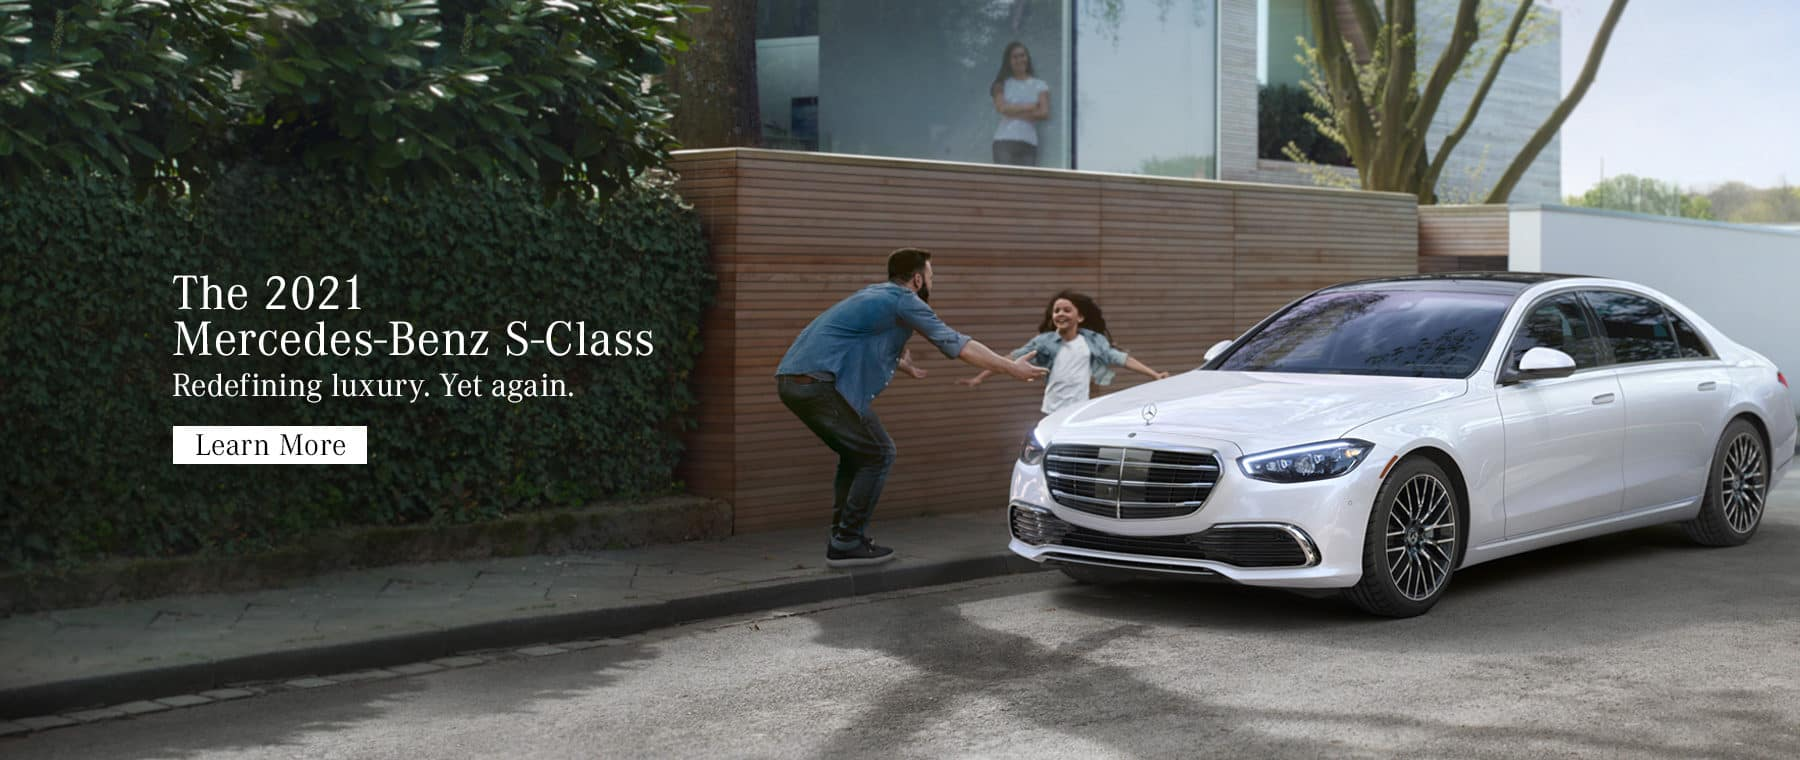 S Class Experience the best